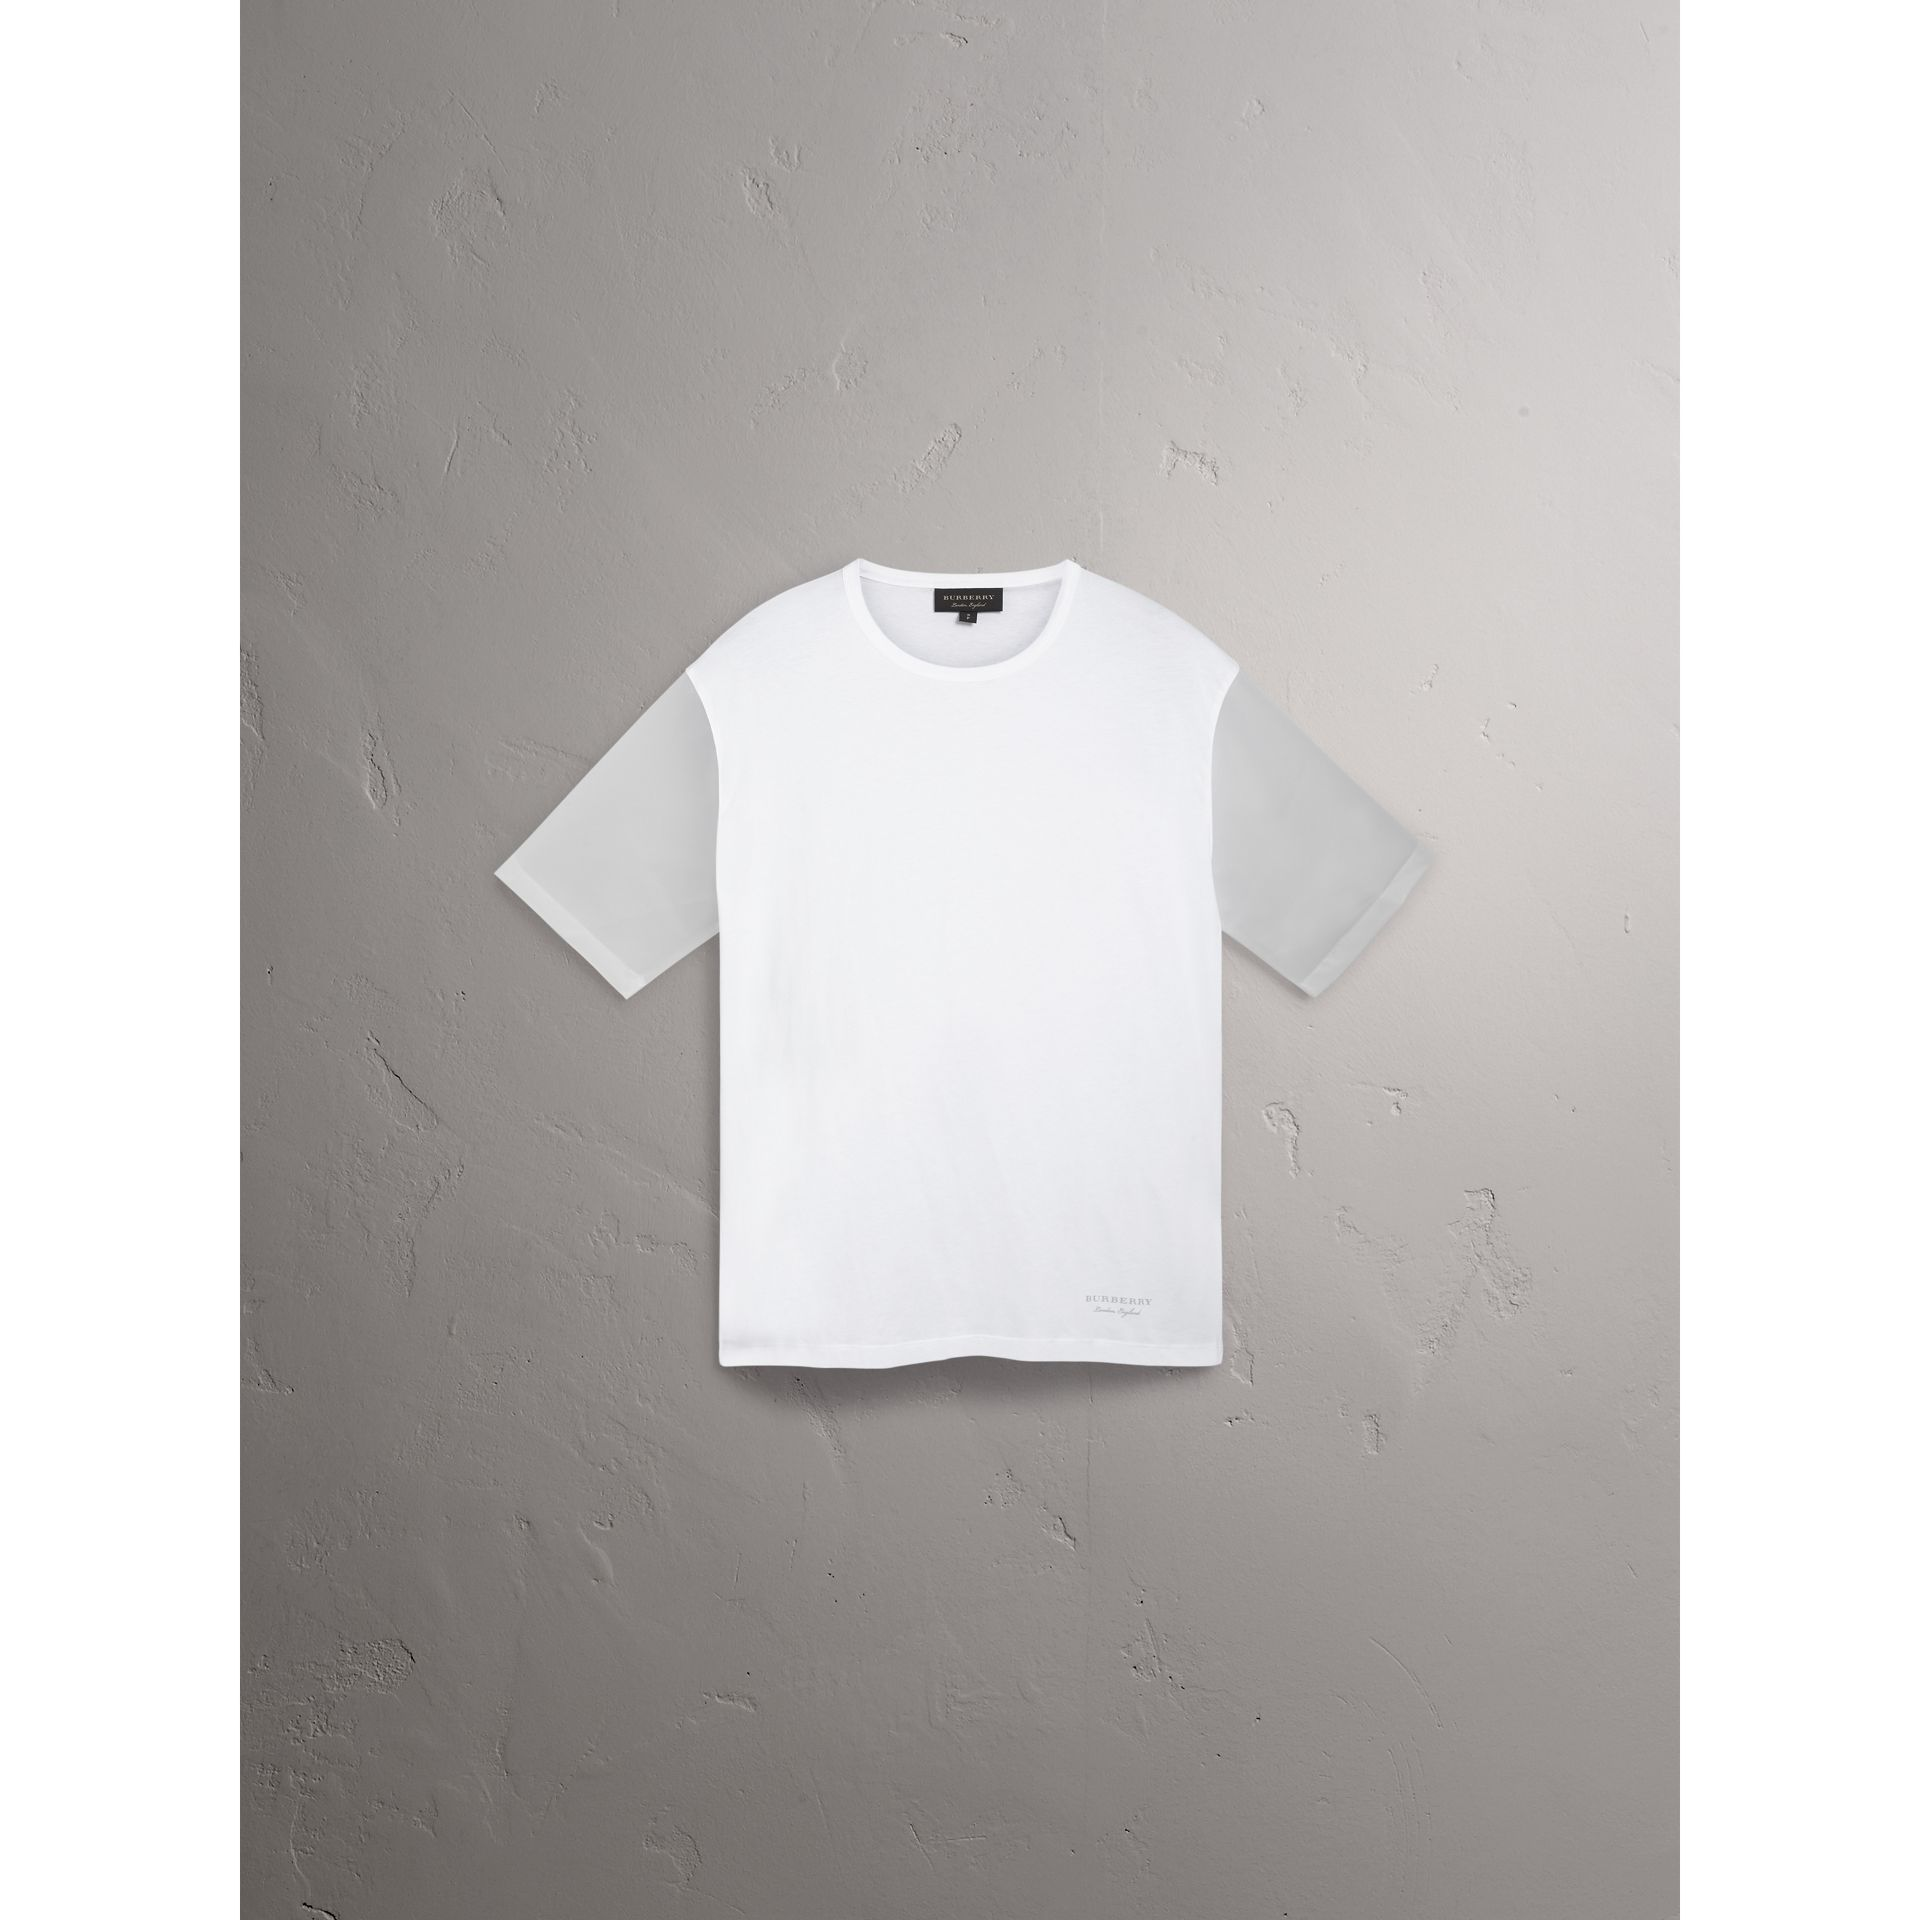 Burberry White Cotton and Soft-touch Plastic T-shirt